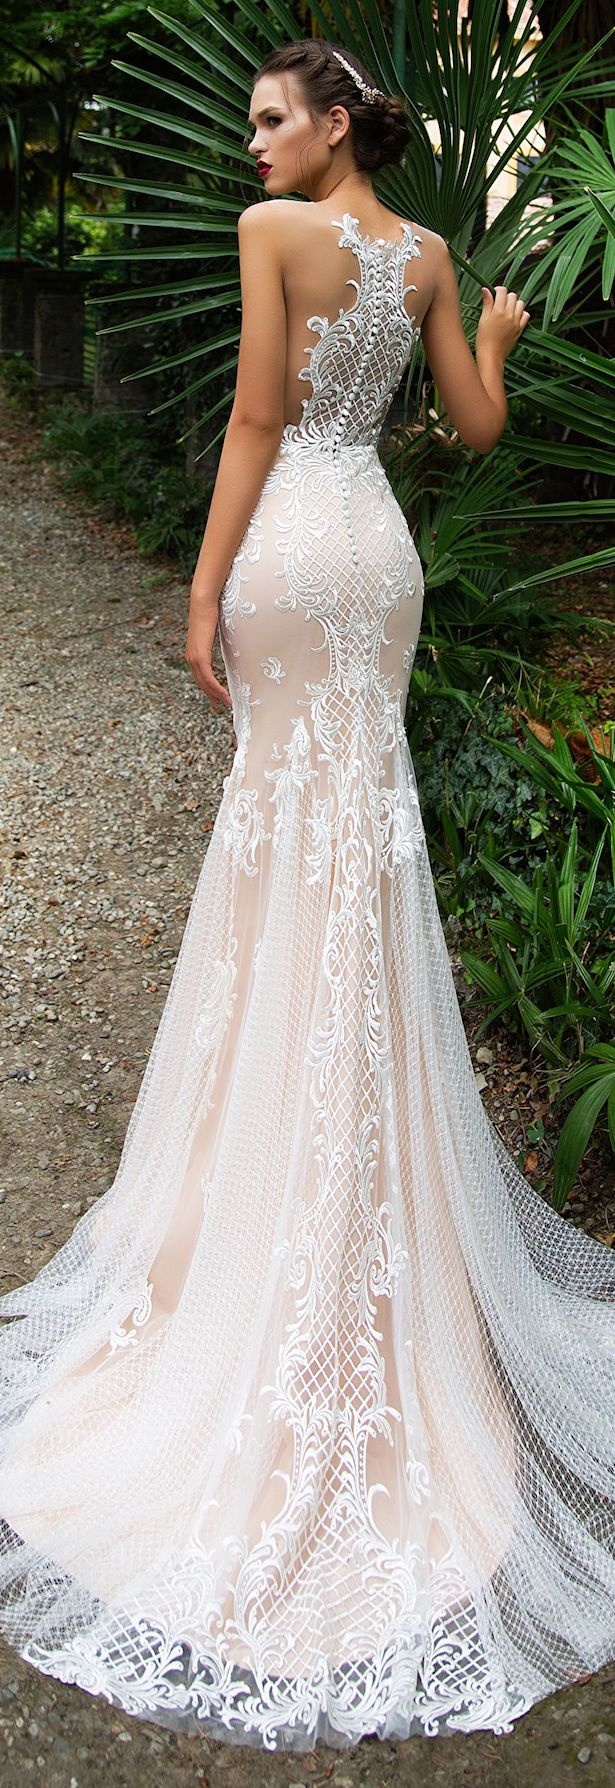 Wedding dresses by milla nova white desire 2017 bridal for Wedding dresses for bridesmaid